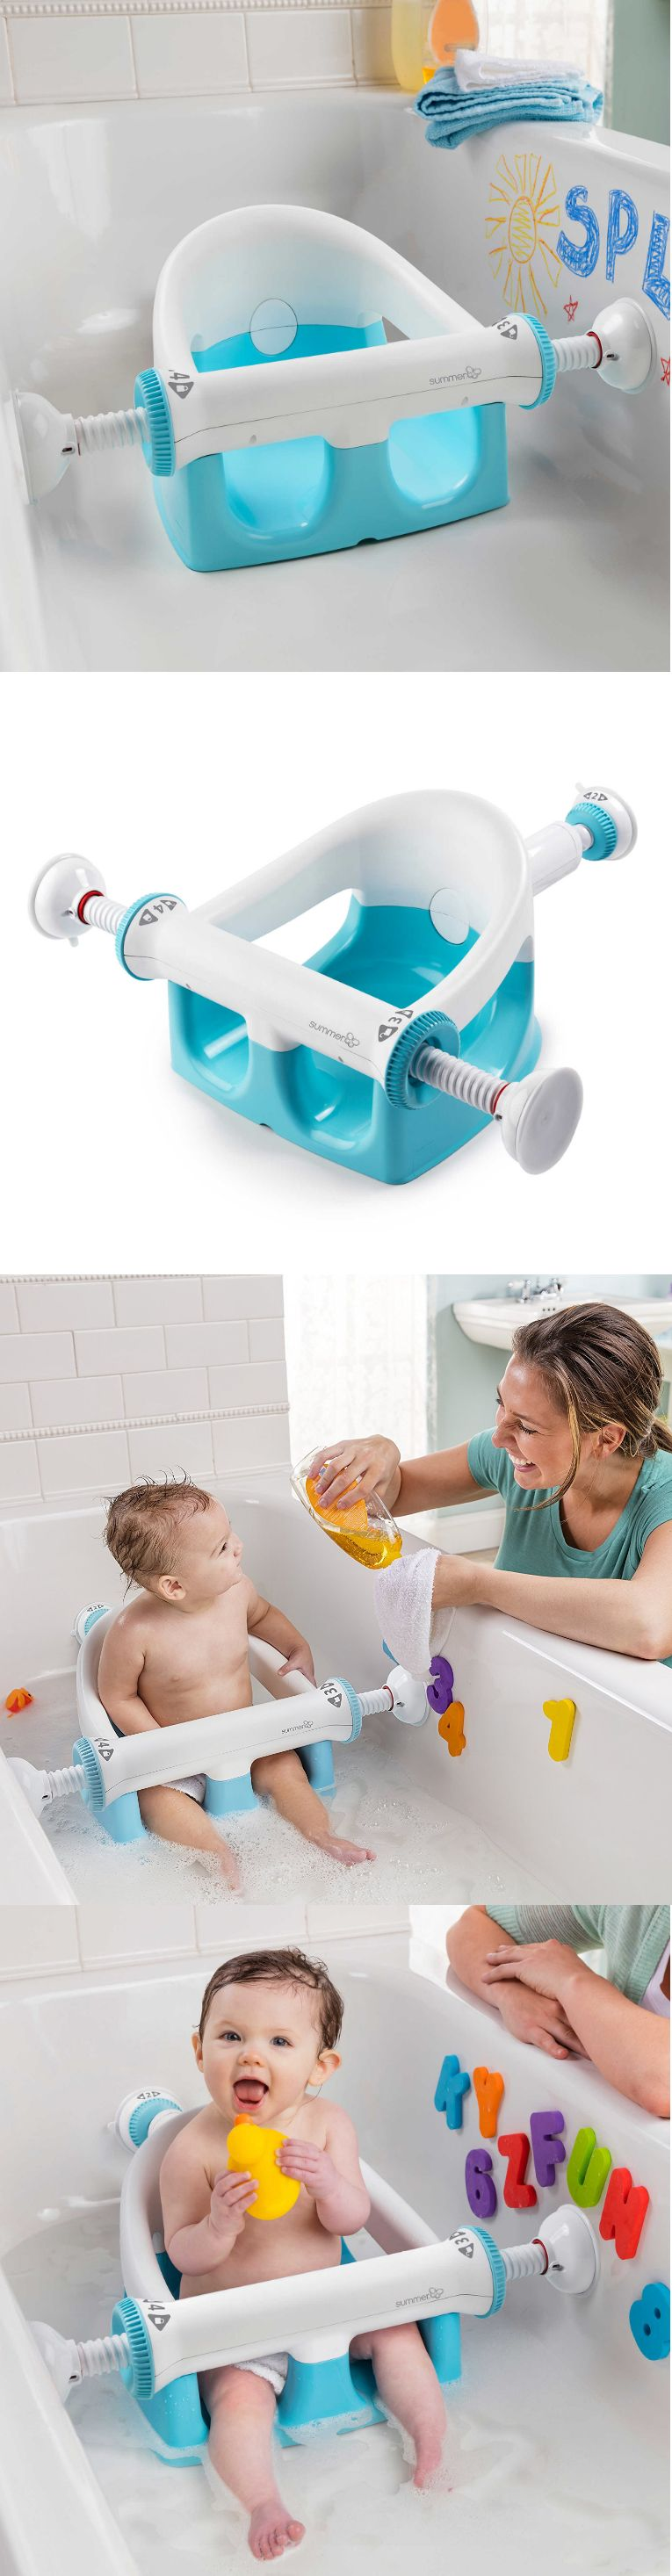 Bath Tub Seats and Rings 162024: Baby Bath Tub Seat Infant Toddler ...